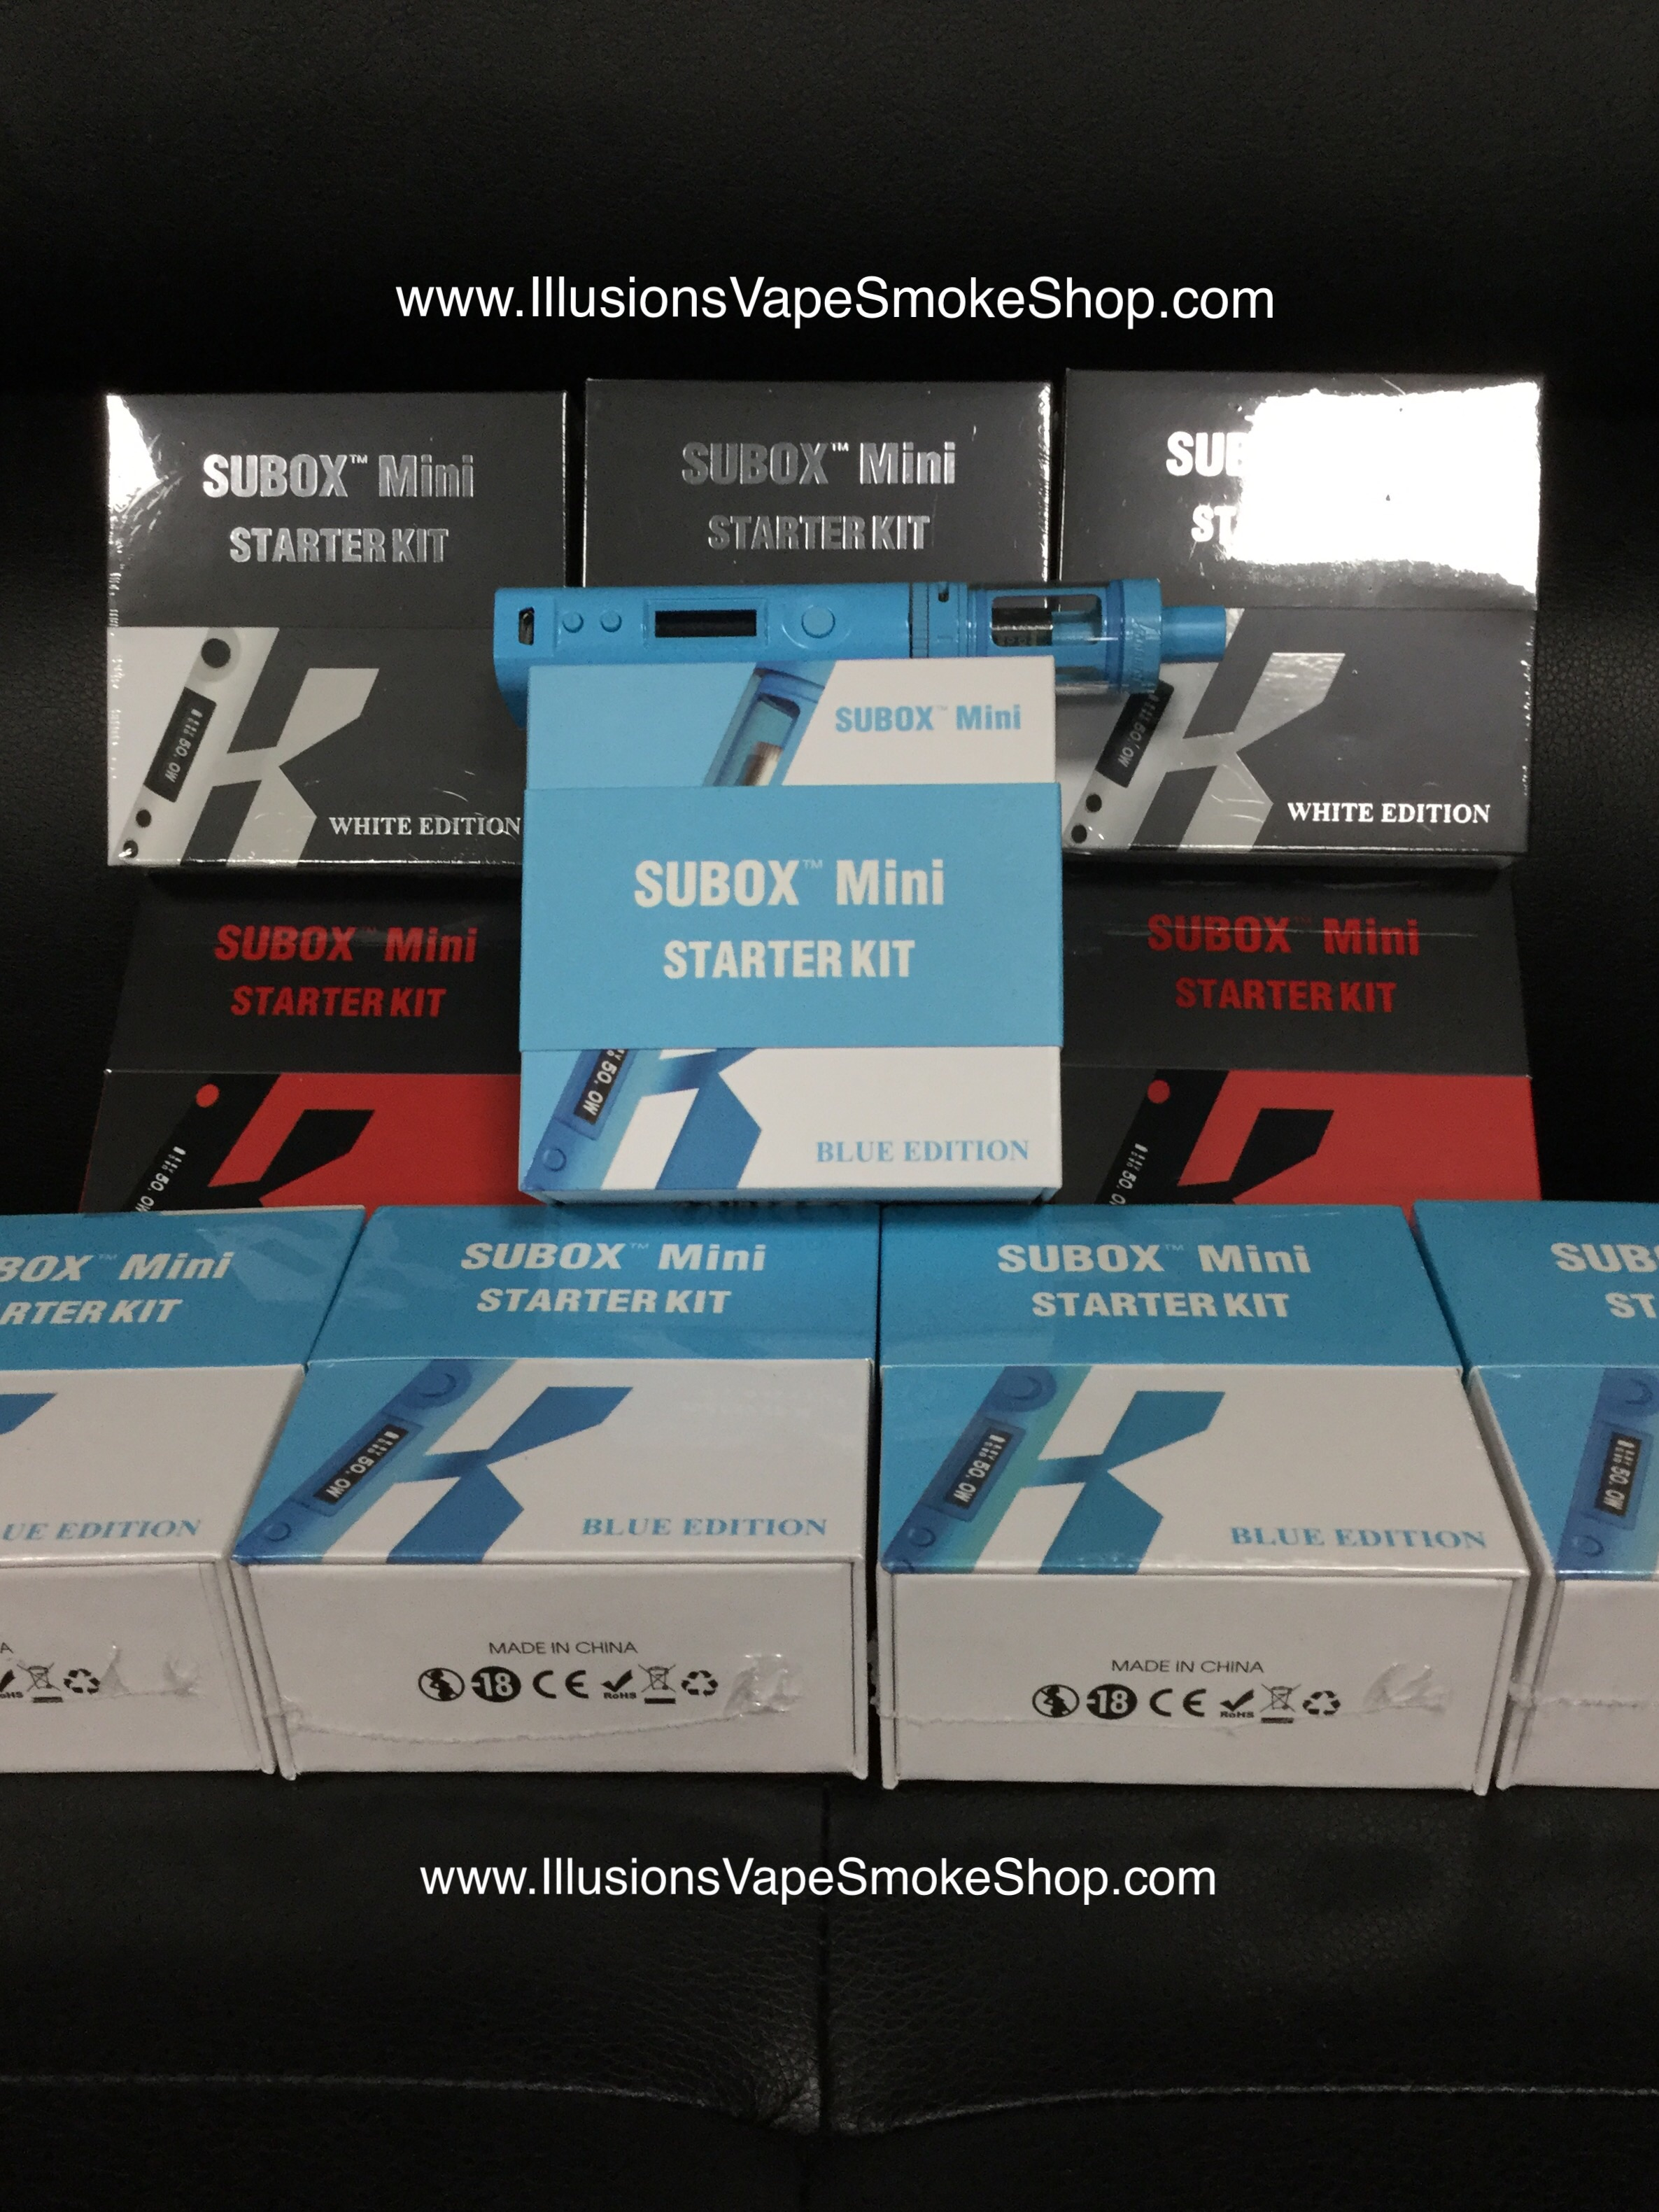 Www.illusionsvapesmokeshop.com